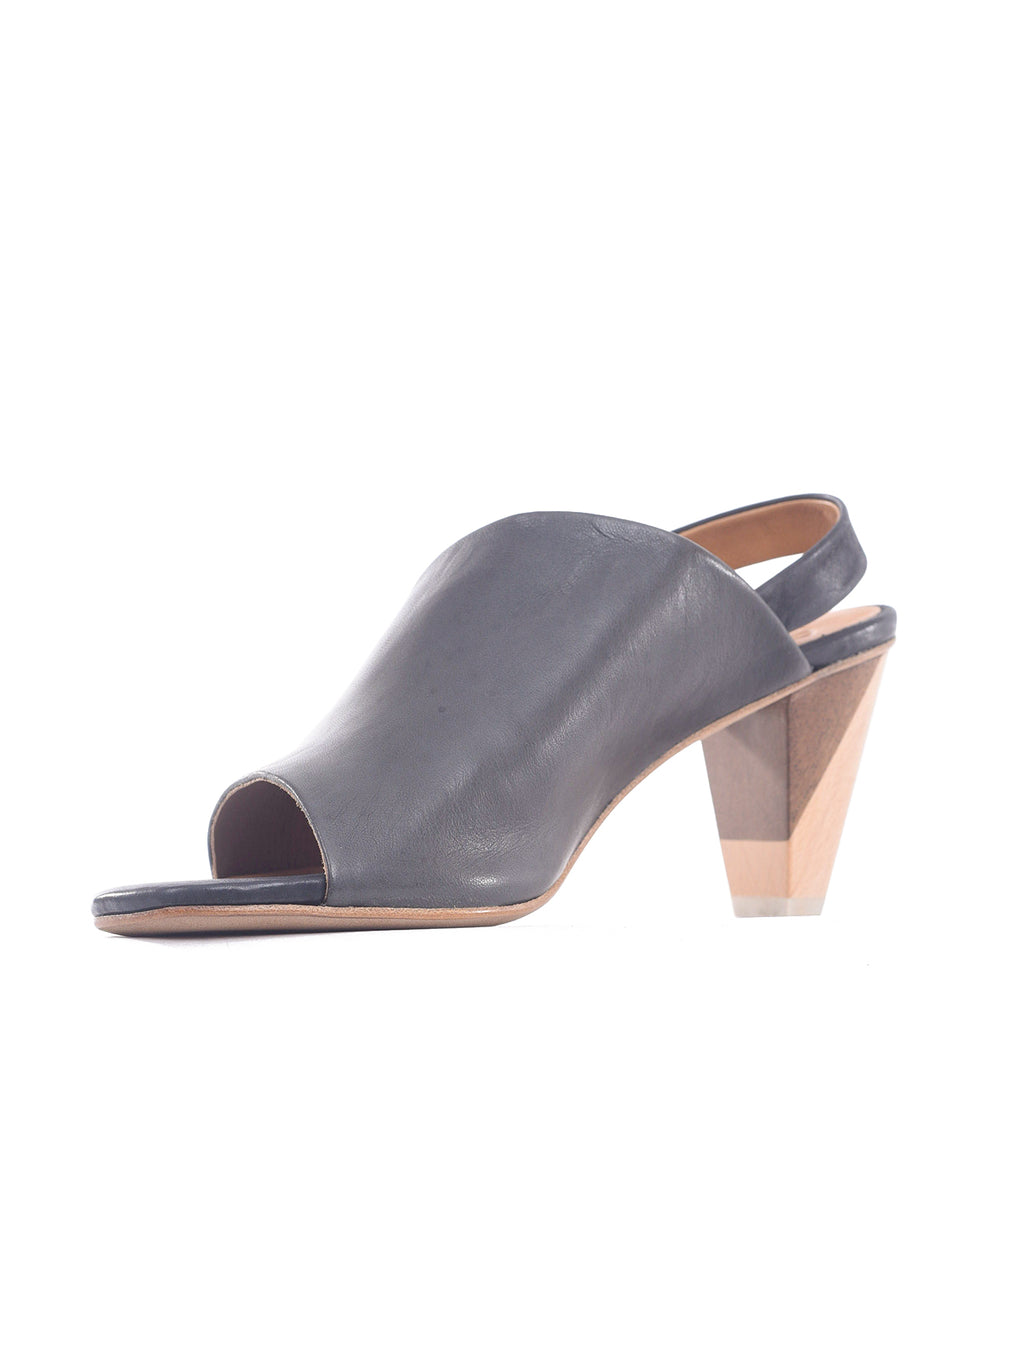 Coclico Akers Heels, Rock Smog